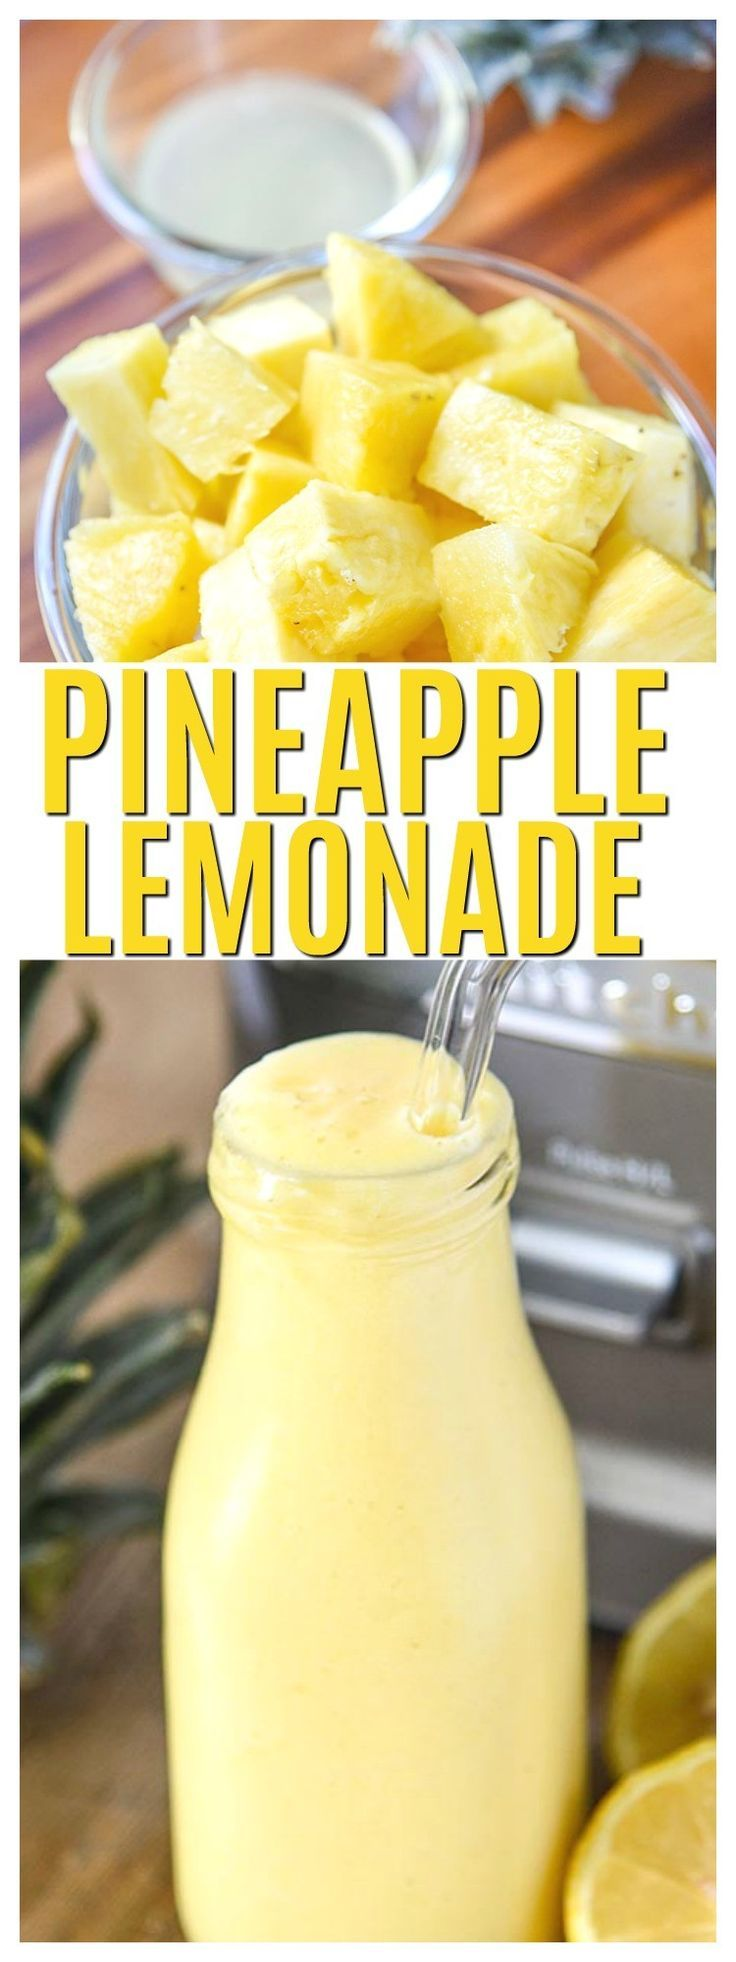 This frosty Pineapple Lemonade Recipe Homemade is perfection! Make it if you nee... This frosty Pineapple Lemonade Recipe Homemade is perfection! Make it if you nee...